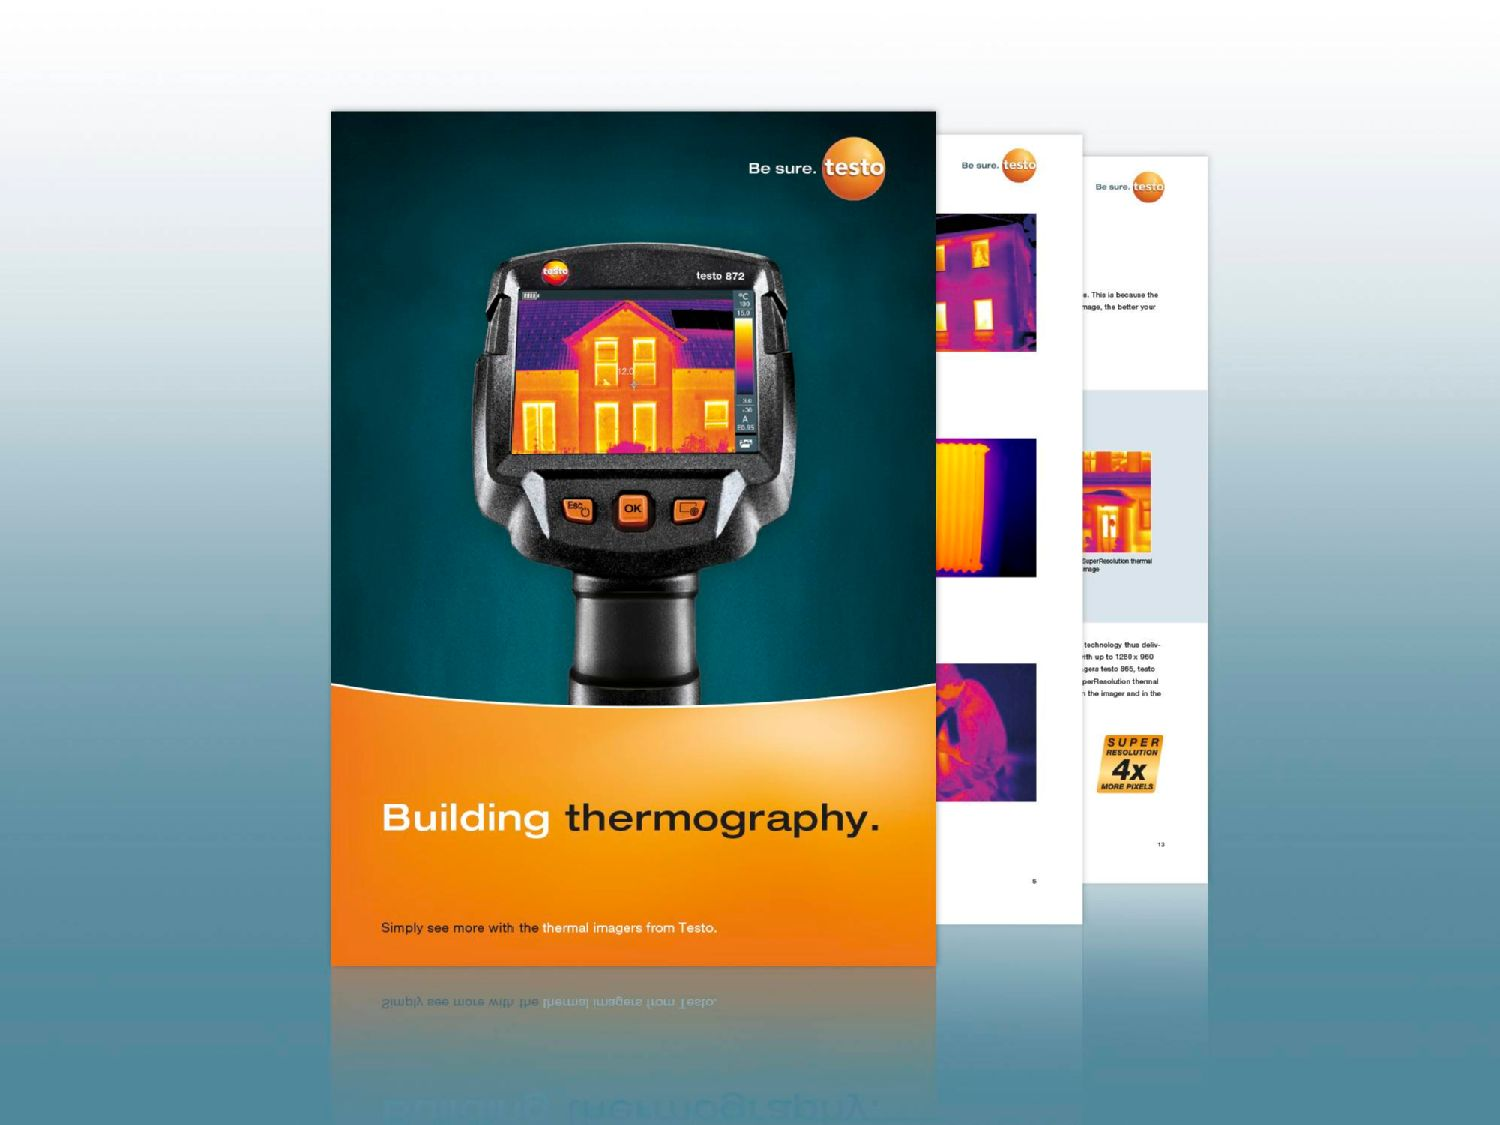 Brochure-Building-Thermography-2000x1500-EN.jpg